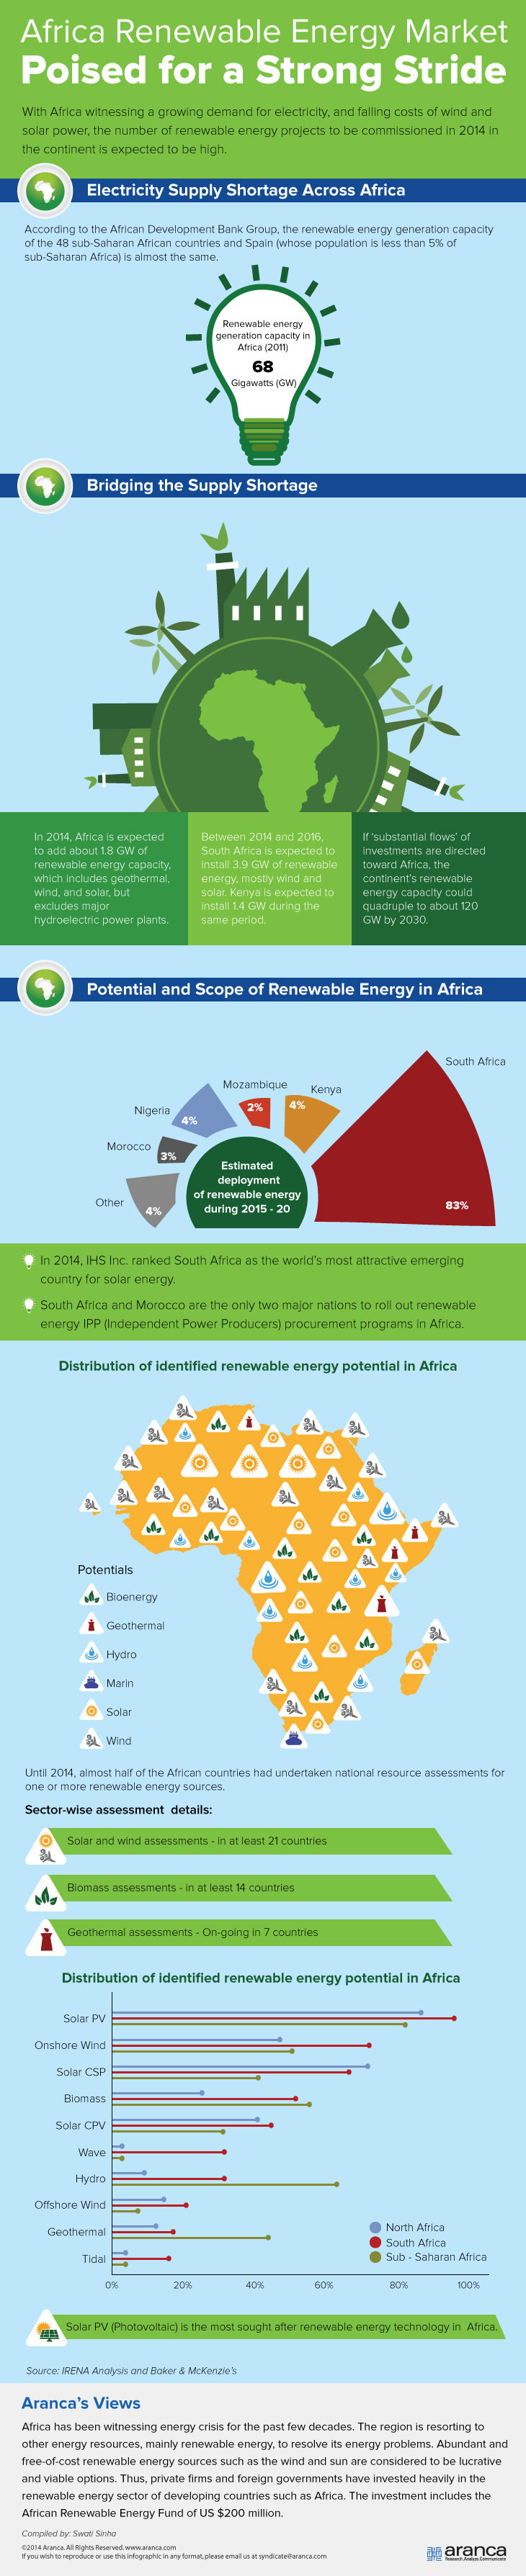 Africa Renewable Energy Market